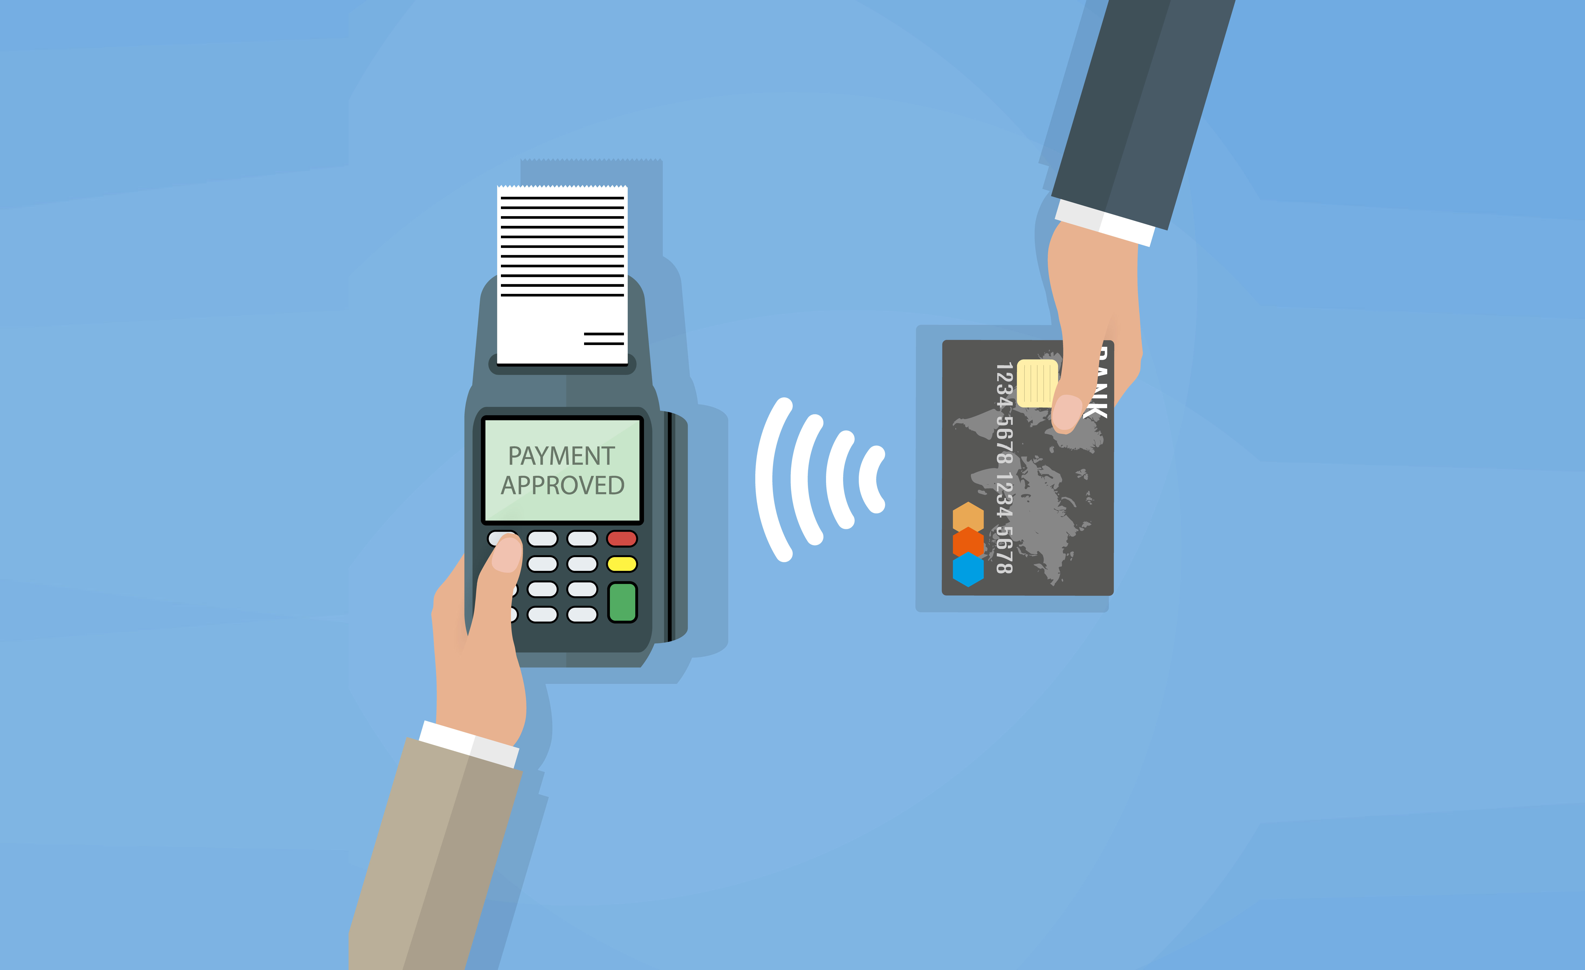 Payment Processing: Here's What You Need to Know in Plain English